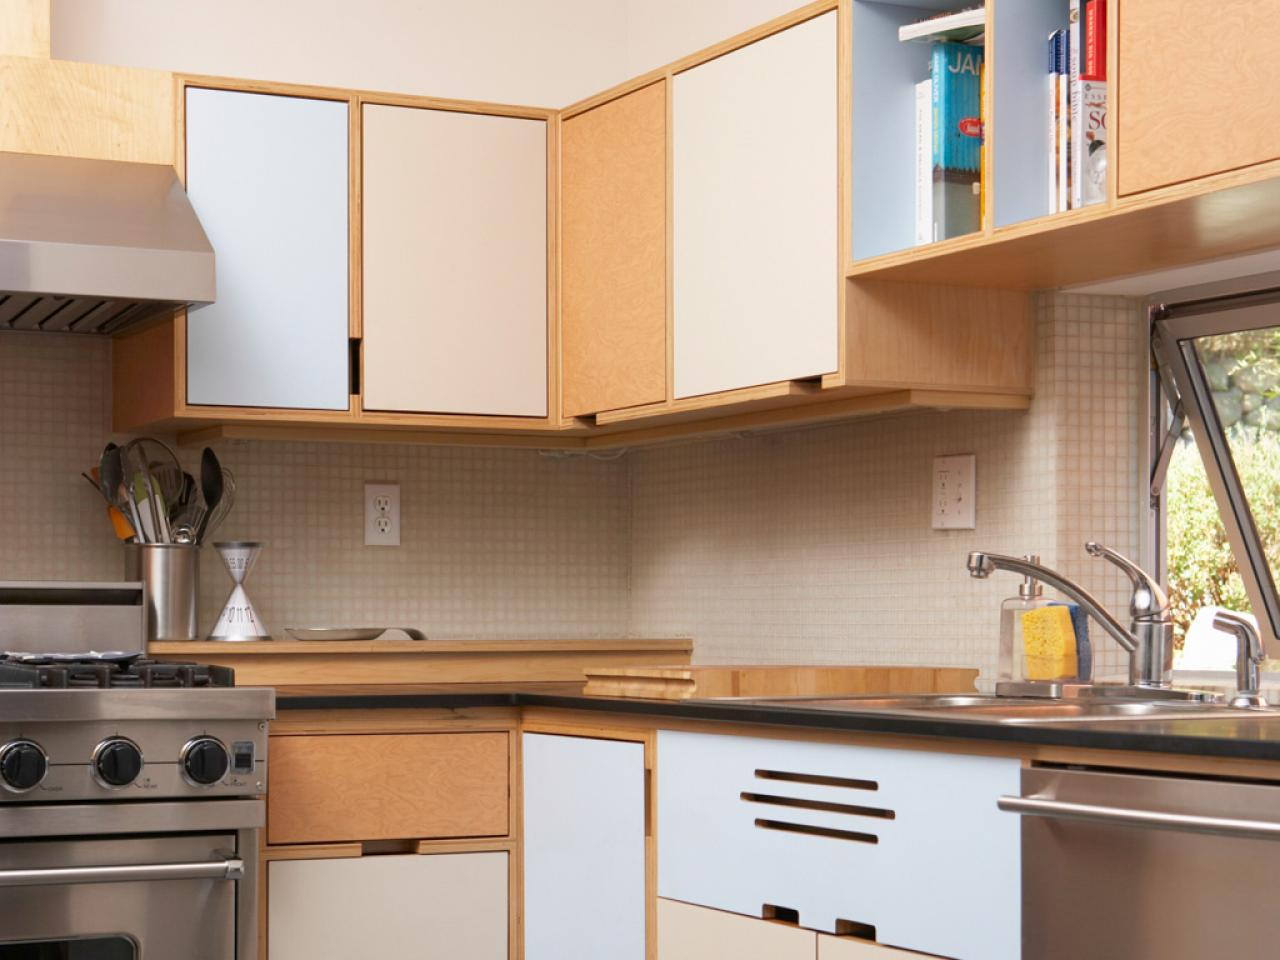 Unfinished Kitchen Cabinets: Pictures & Ideas From HGTV